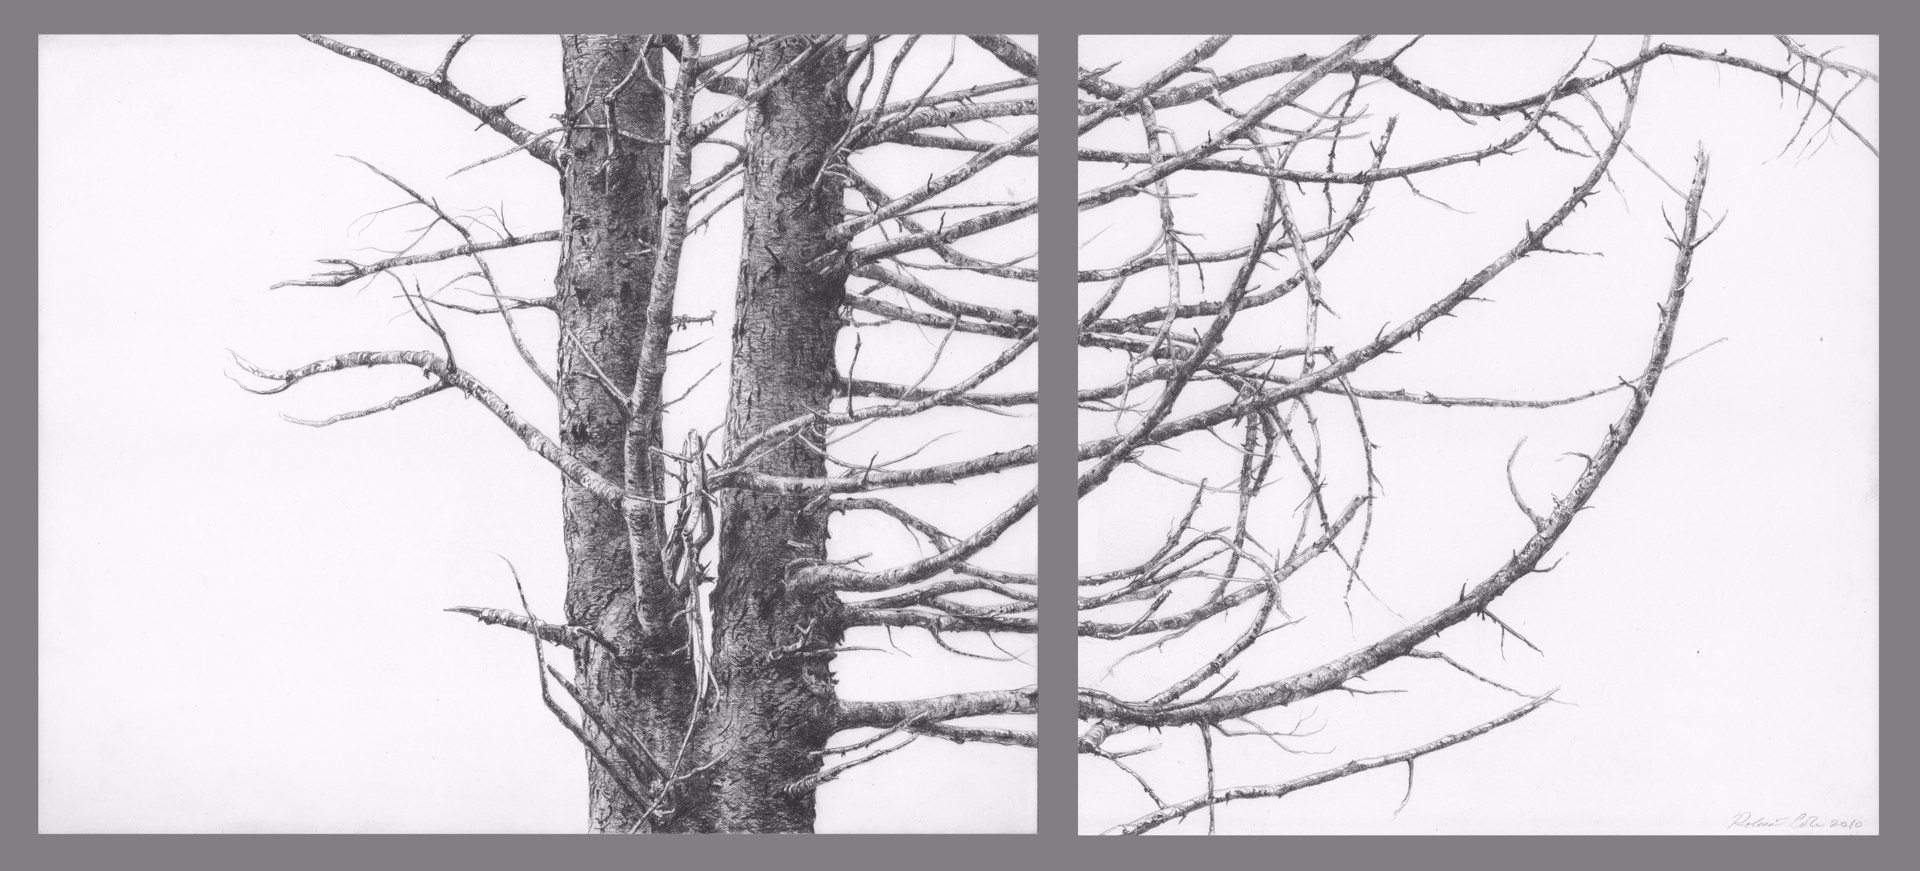 Diverge , 2010. Graphite on clayboard. Diptych: 8 x 10 and 8 x 8 inches. Private collection.